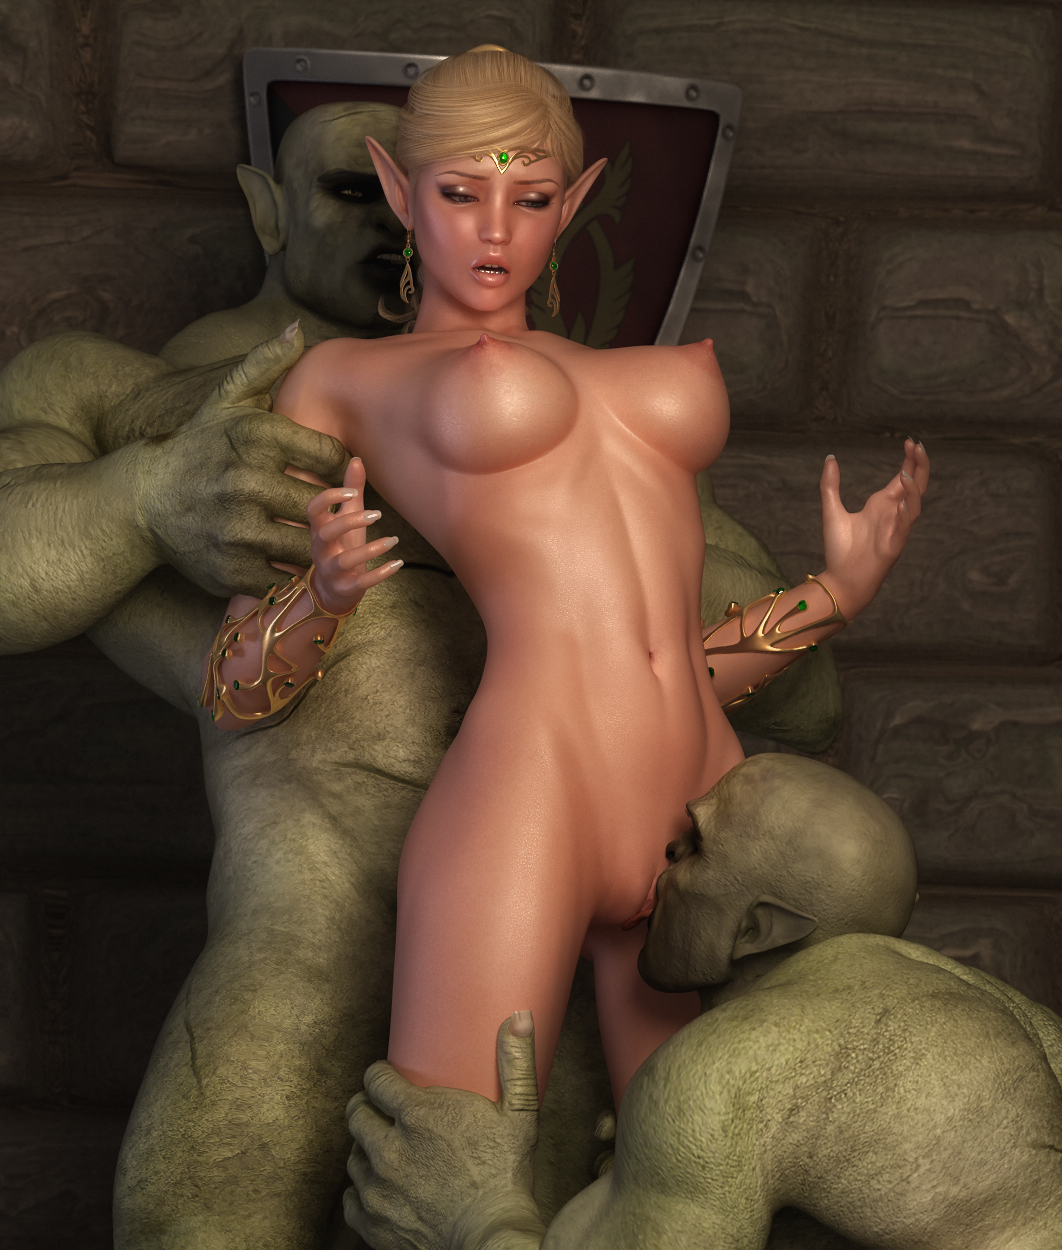 Porn free hentai elf monstercock exploited clips